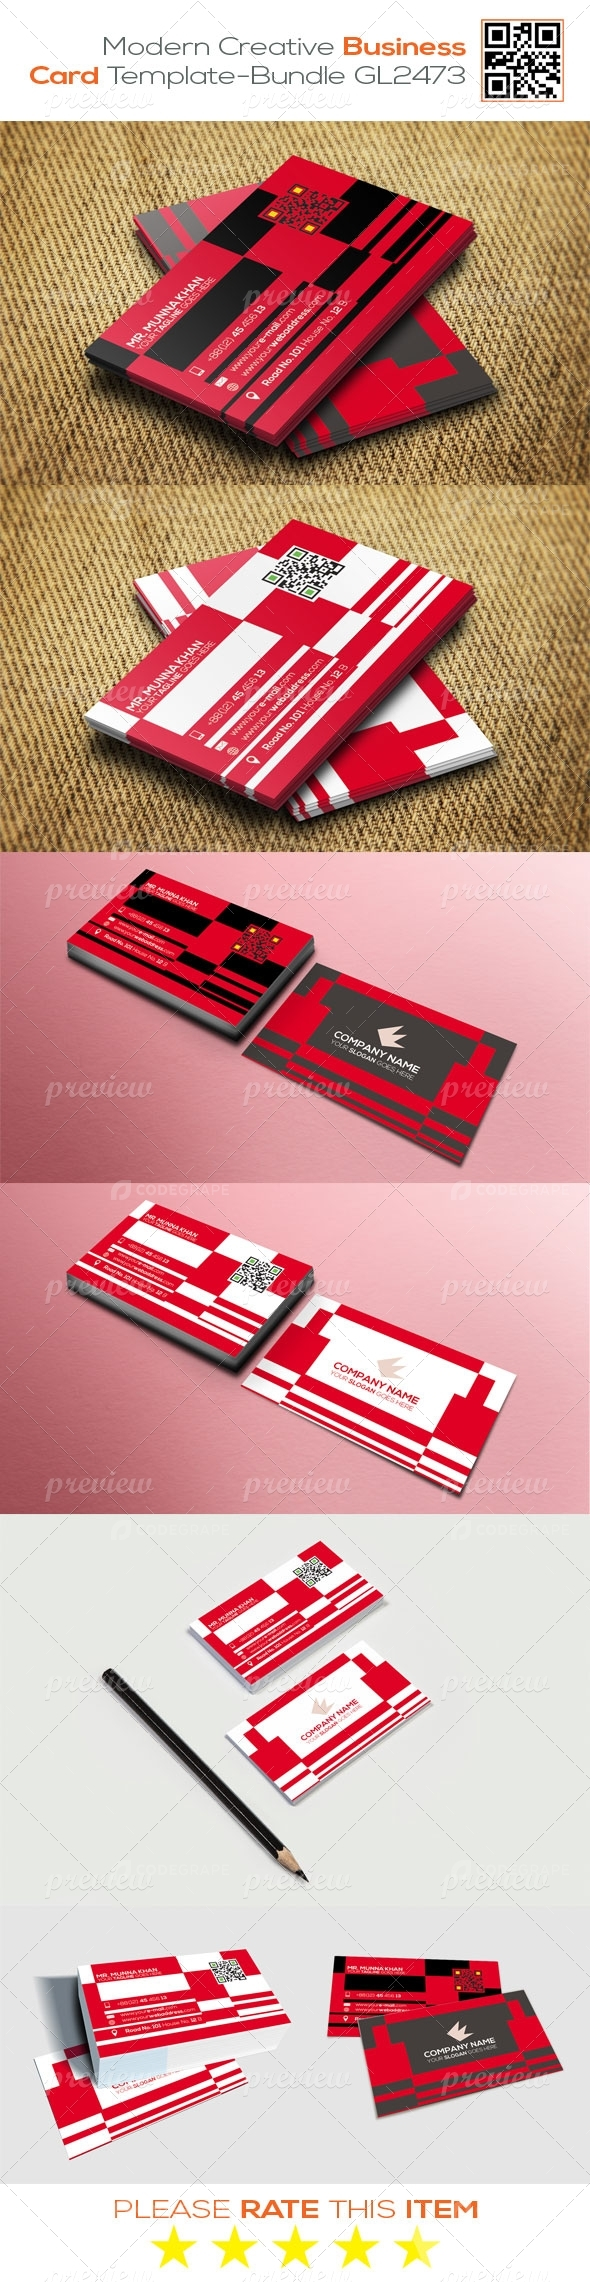 Modern Creative Business Card Template - Bundle GL2473